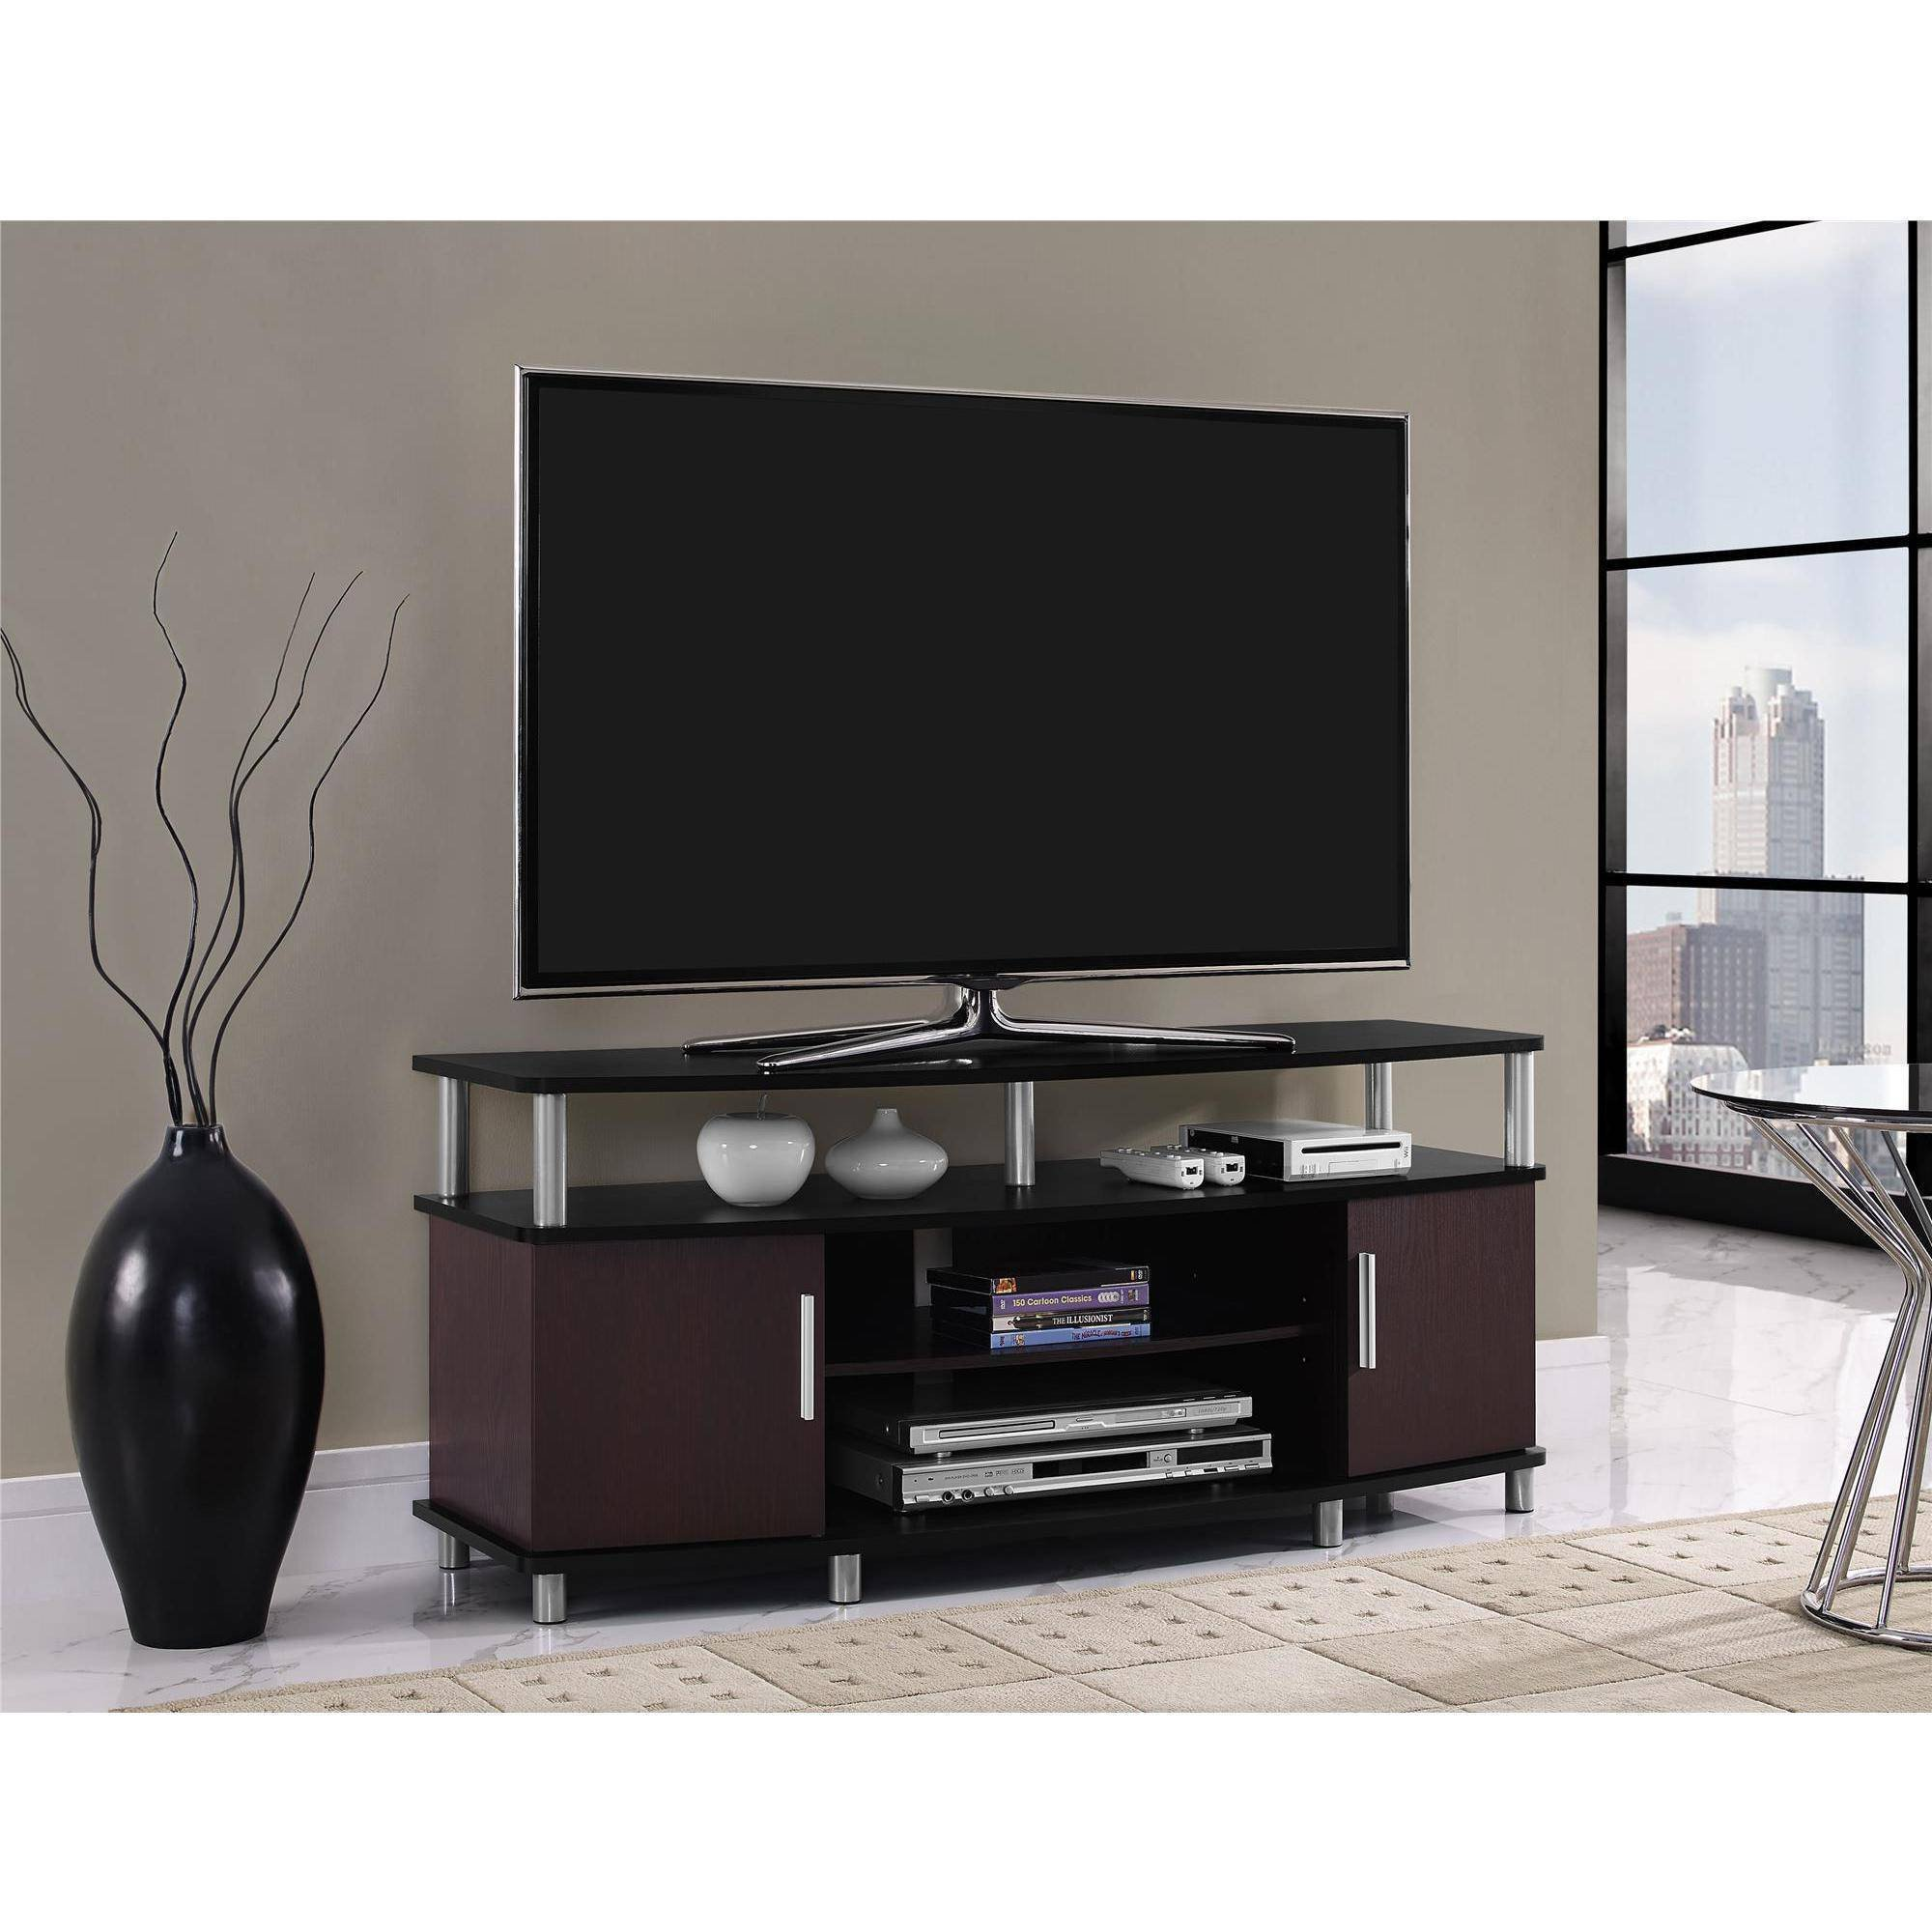 "Tall Tv Stands for Bedroom Beautiful Carson Tv Stand for Tvs Up to 50"" Multiple Finishes Walmart"